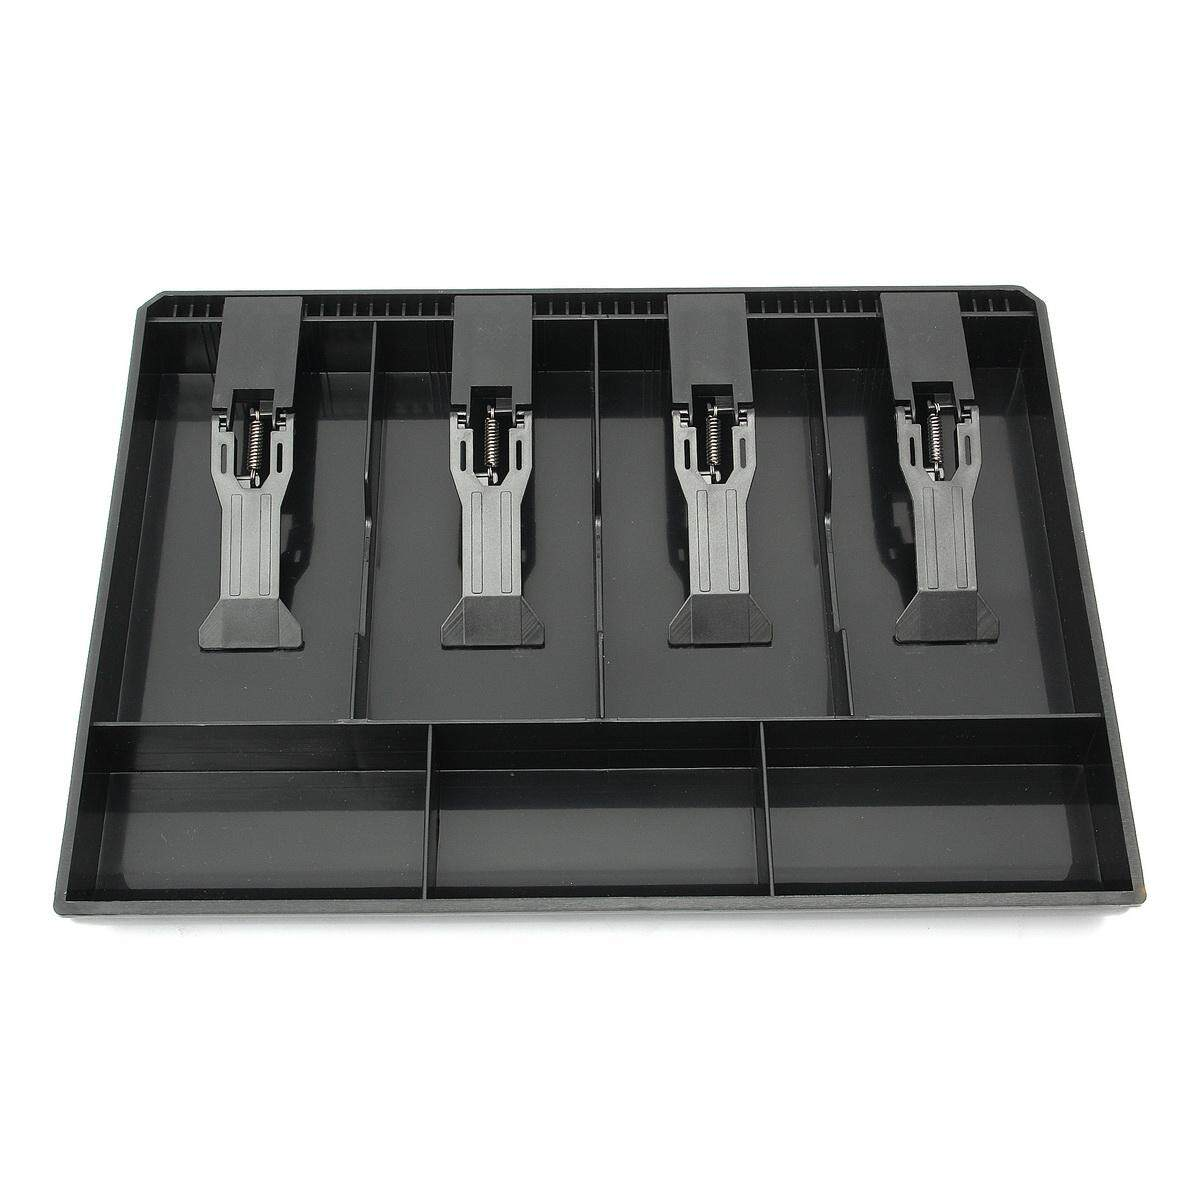 Cash Coin Register Replacement Money Drawer Storage Box With 4 Bill 3 Coin Trays Black By Moonbeam.